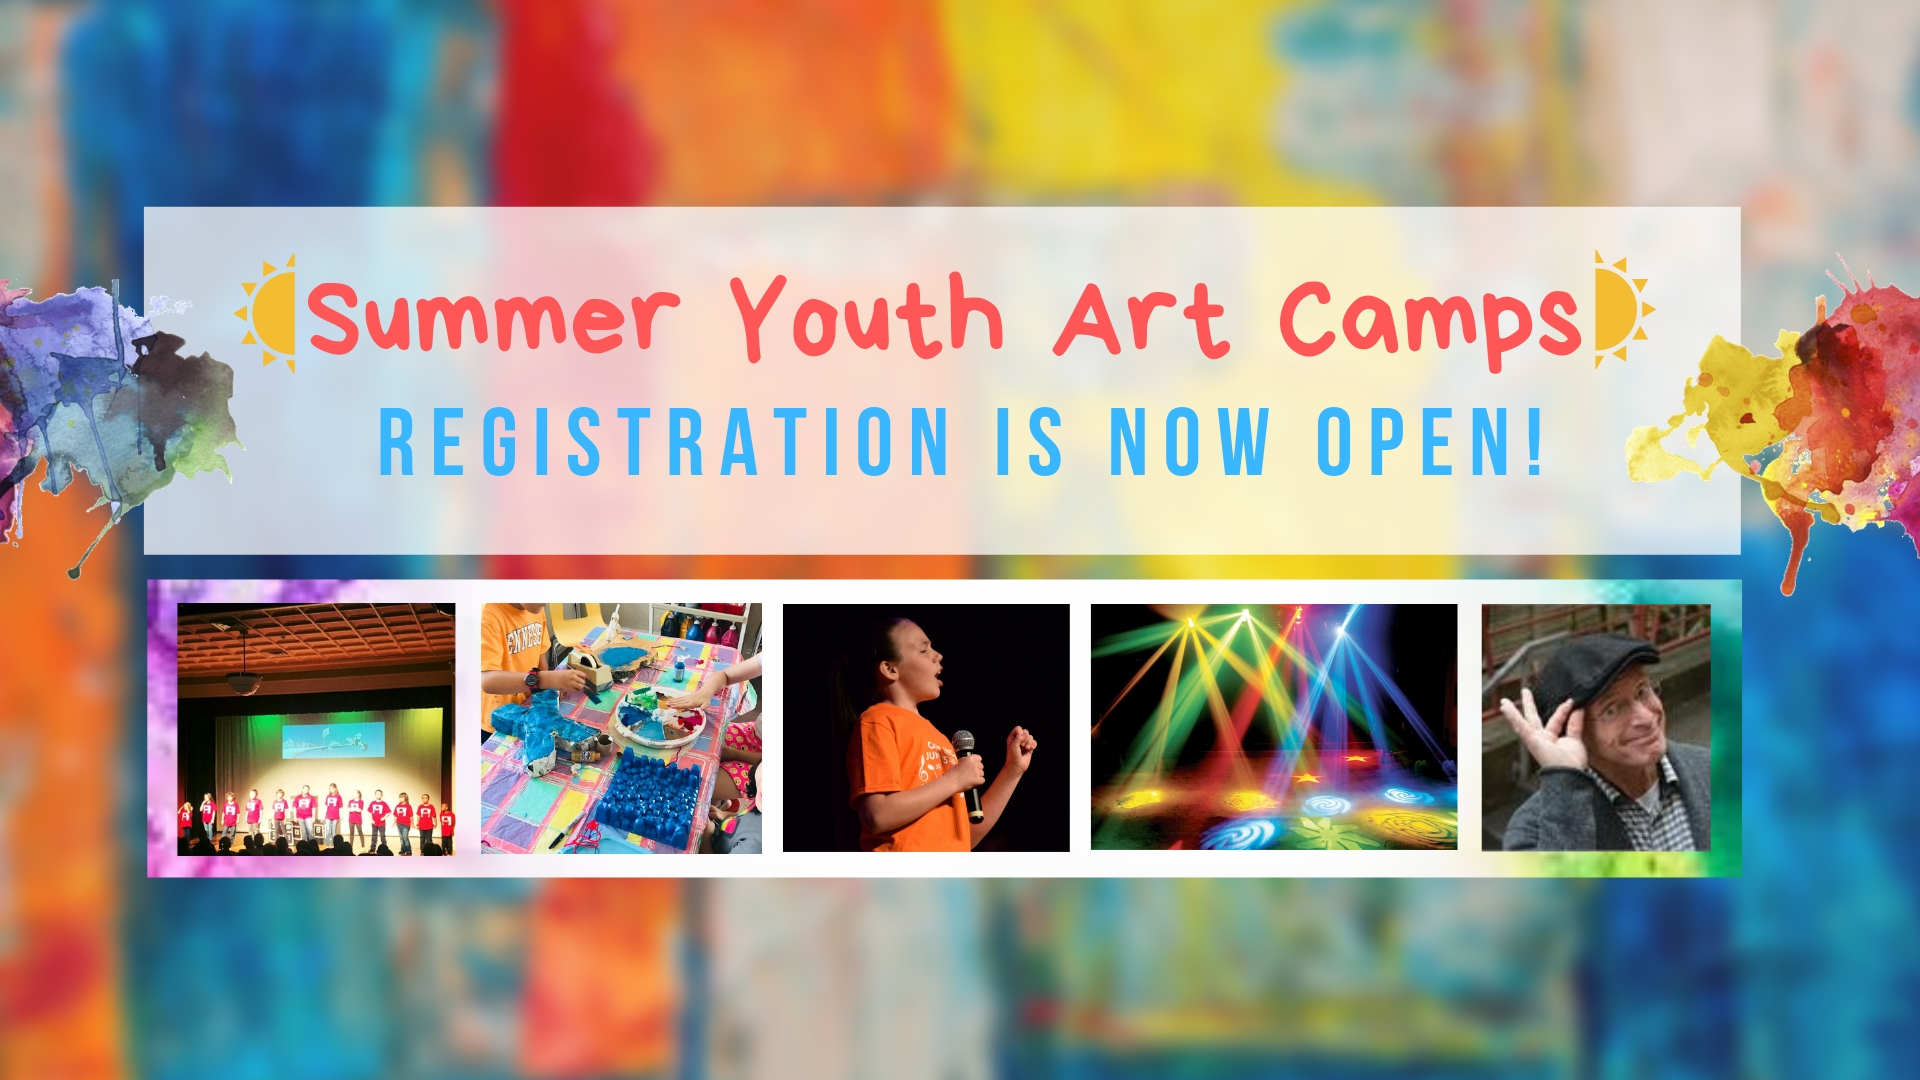 Summer Youth Arts Camps